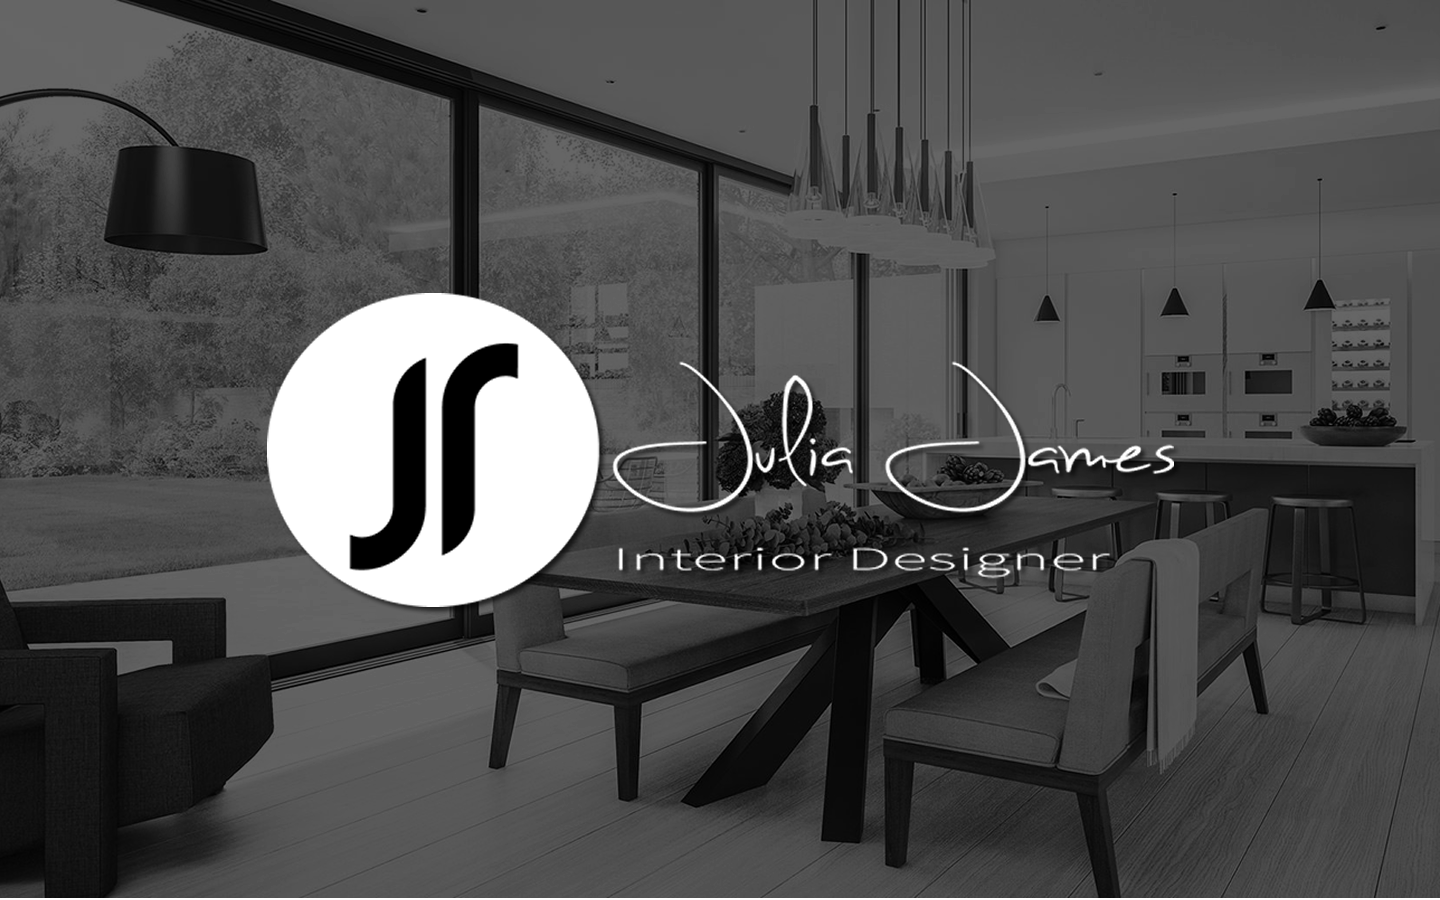 Julia James Interior Designer Logo Design & Brand Identity